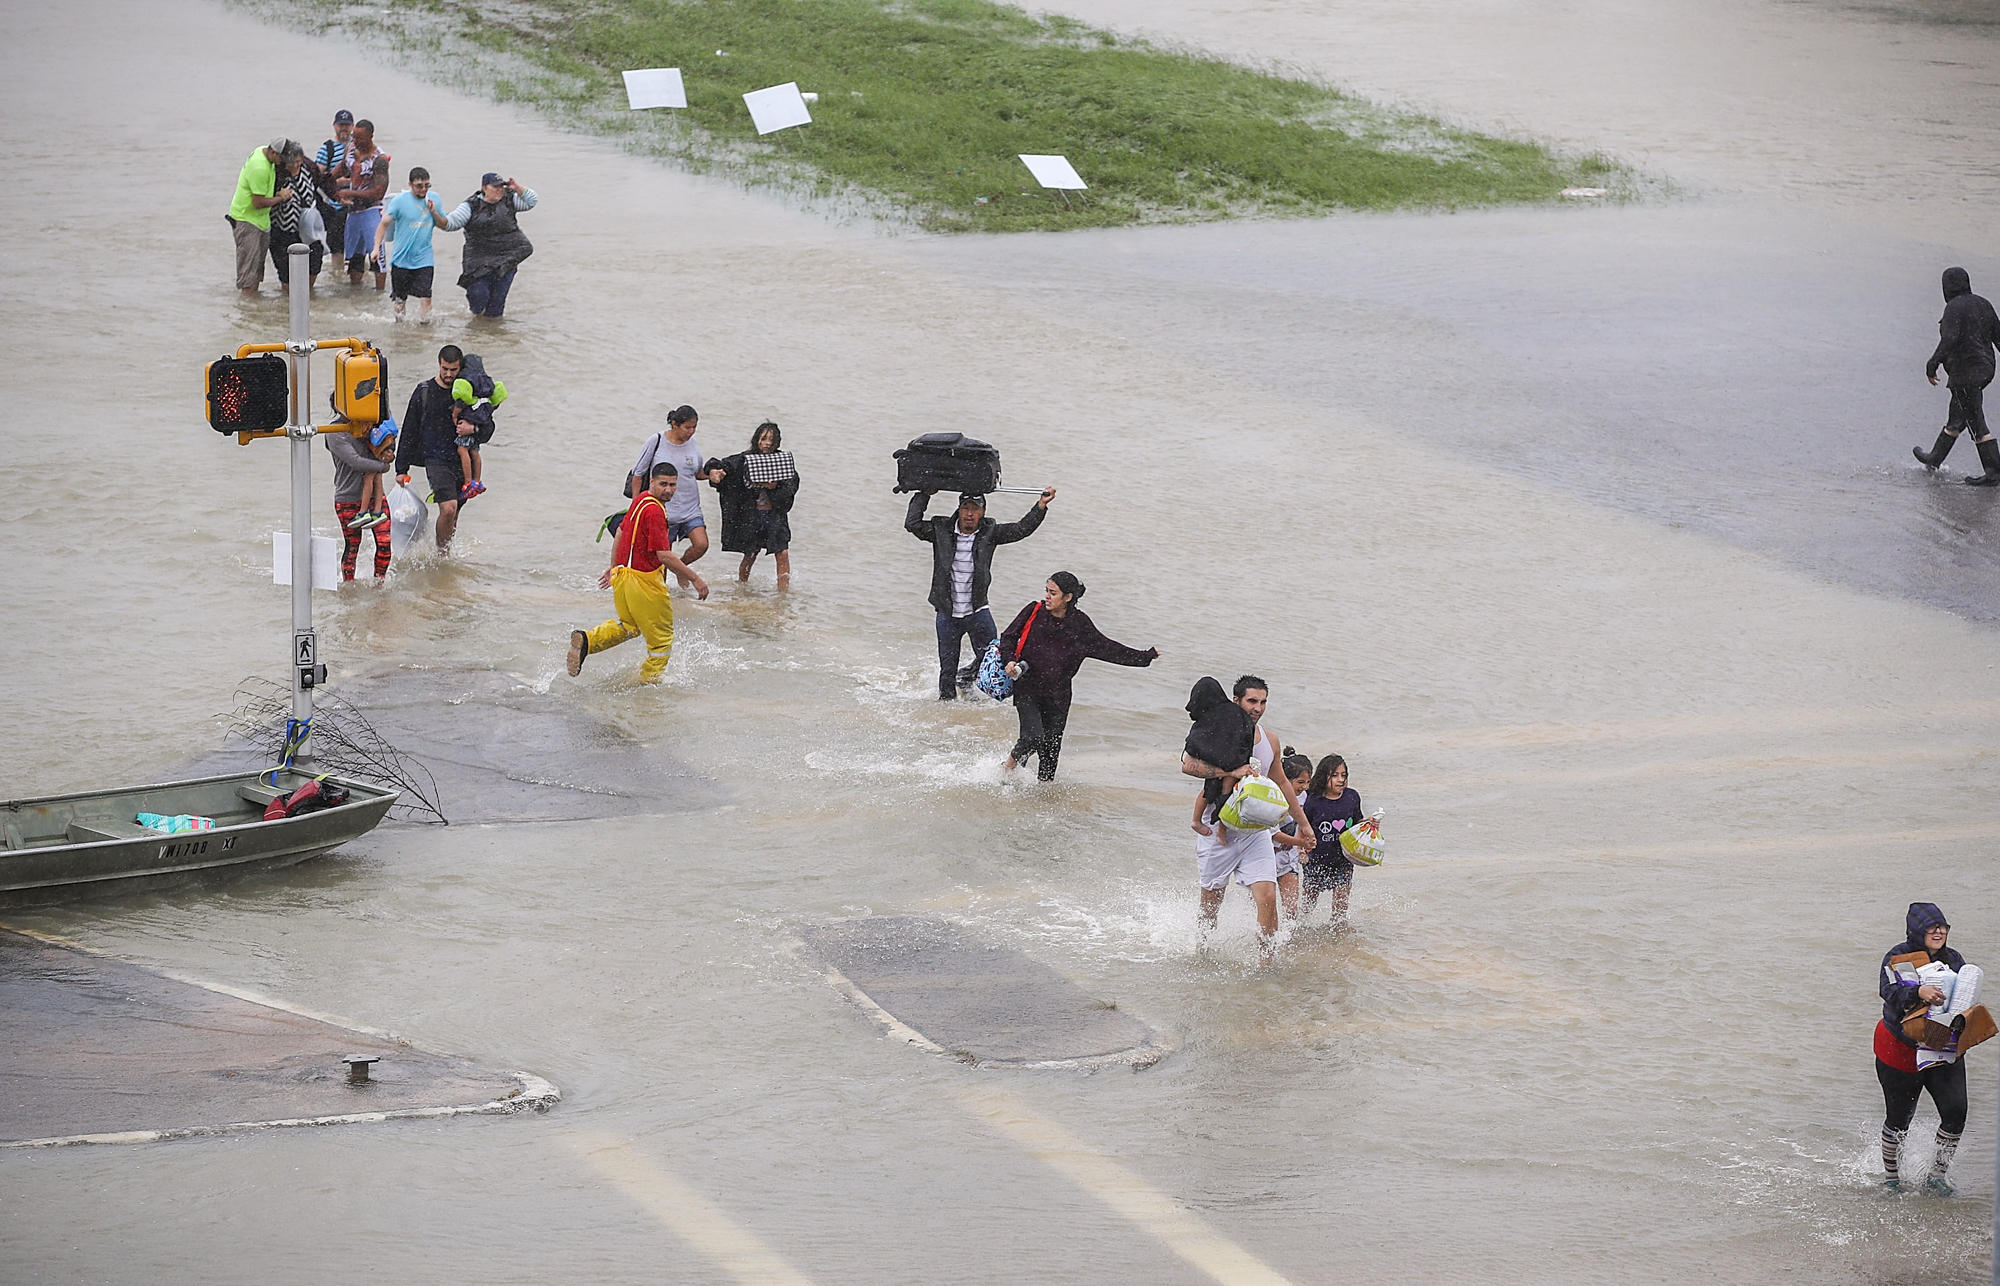 Stay Out Of Flood Water, Texas Health Officials Urge